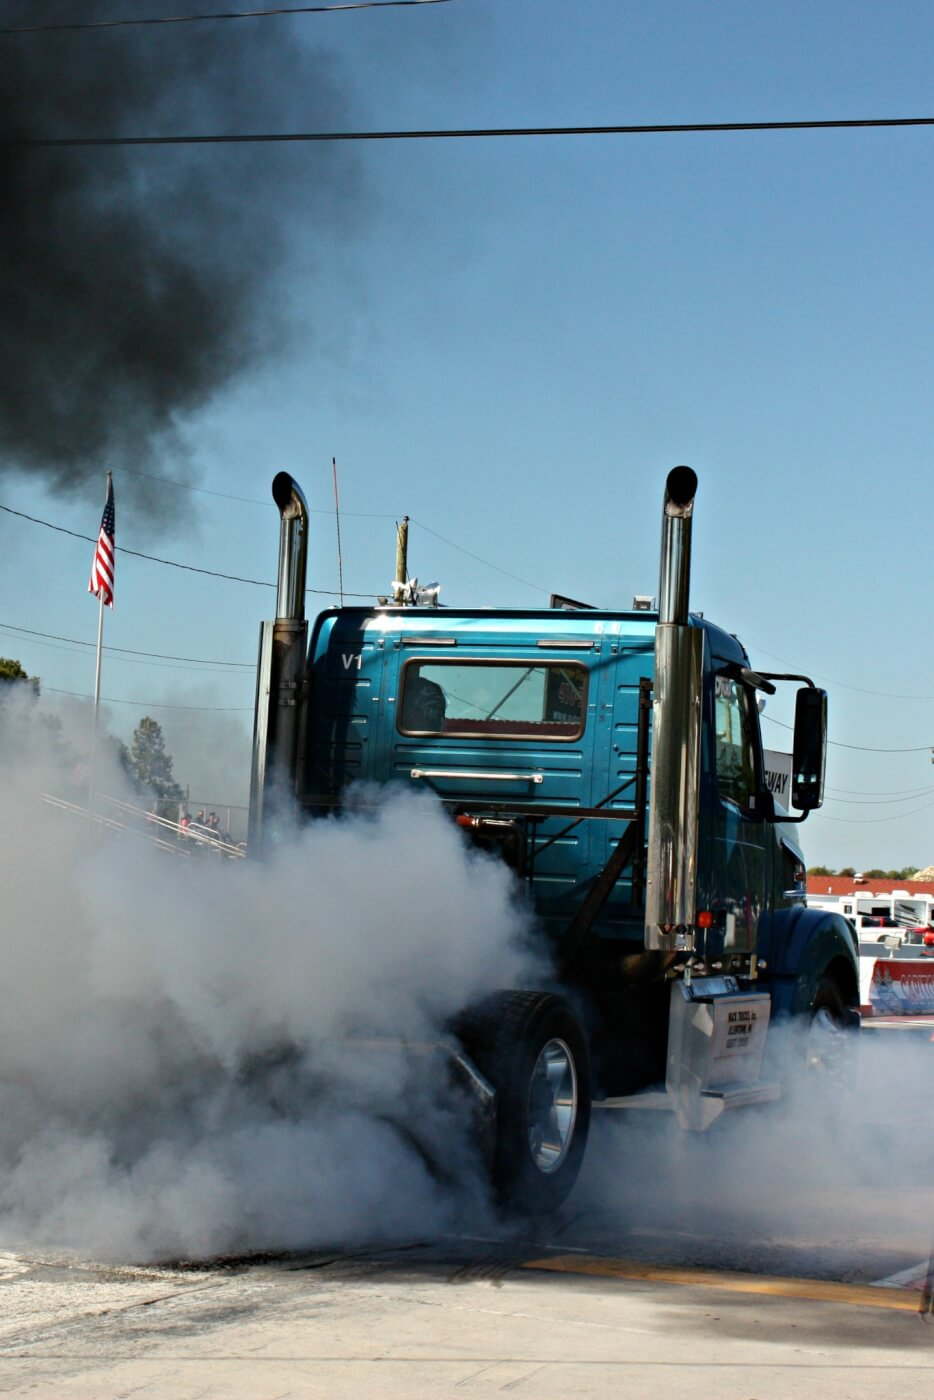 As a true diesel event, anything that ran on diesel was welcome to enter and compete and this short bobtail Volvo came ready to compete. The big power under the hood packed a punch and pushed this semi to low 13s, made for some awesome burnouts too.